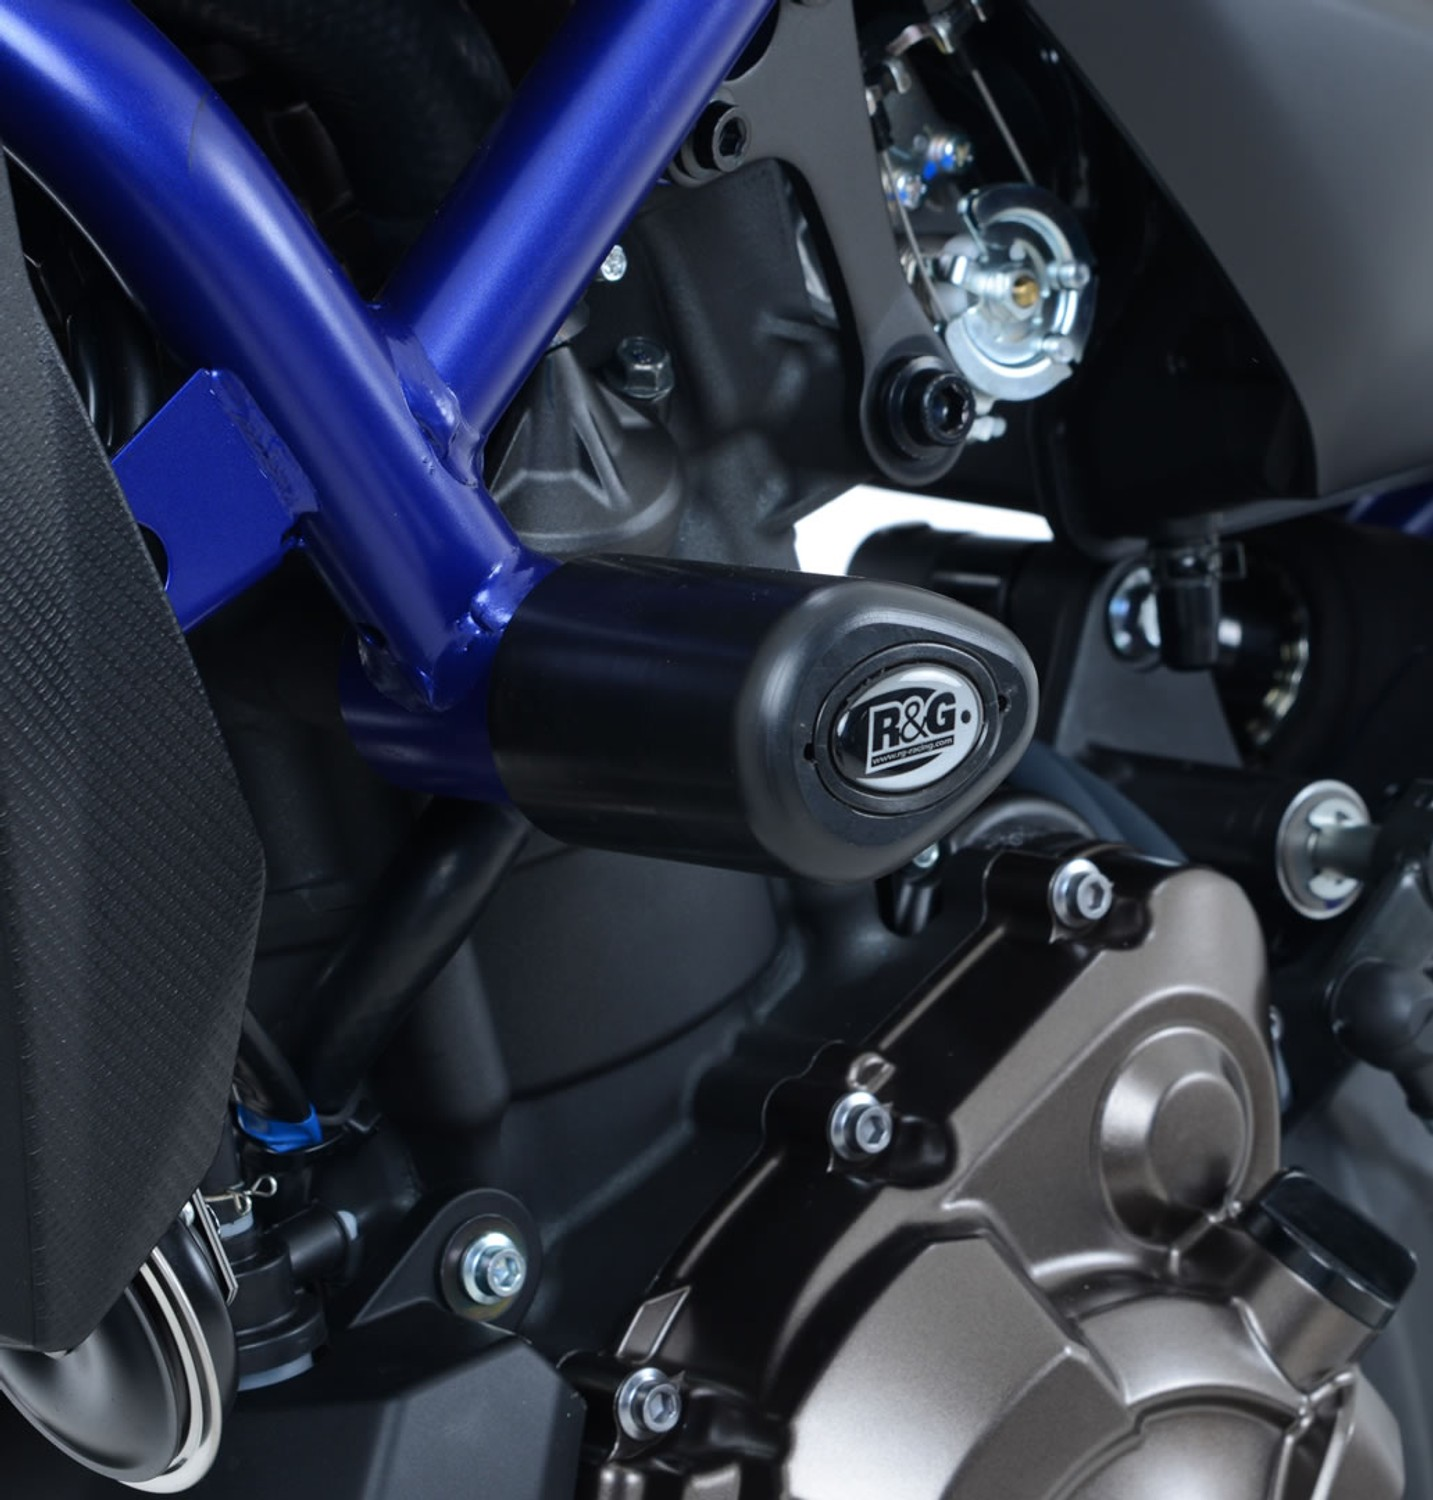 and Tracer 700 /'16 R/&G RACING RADIATOR GUARD Yamaha MT-07 /'14- XSR700 /'16